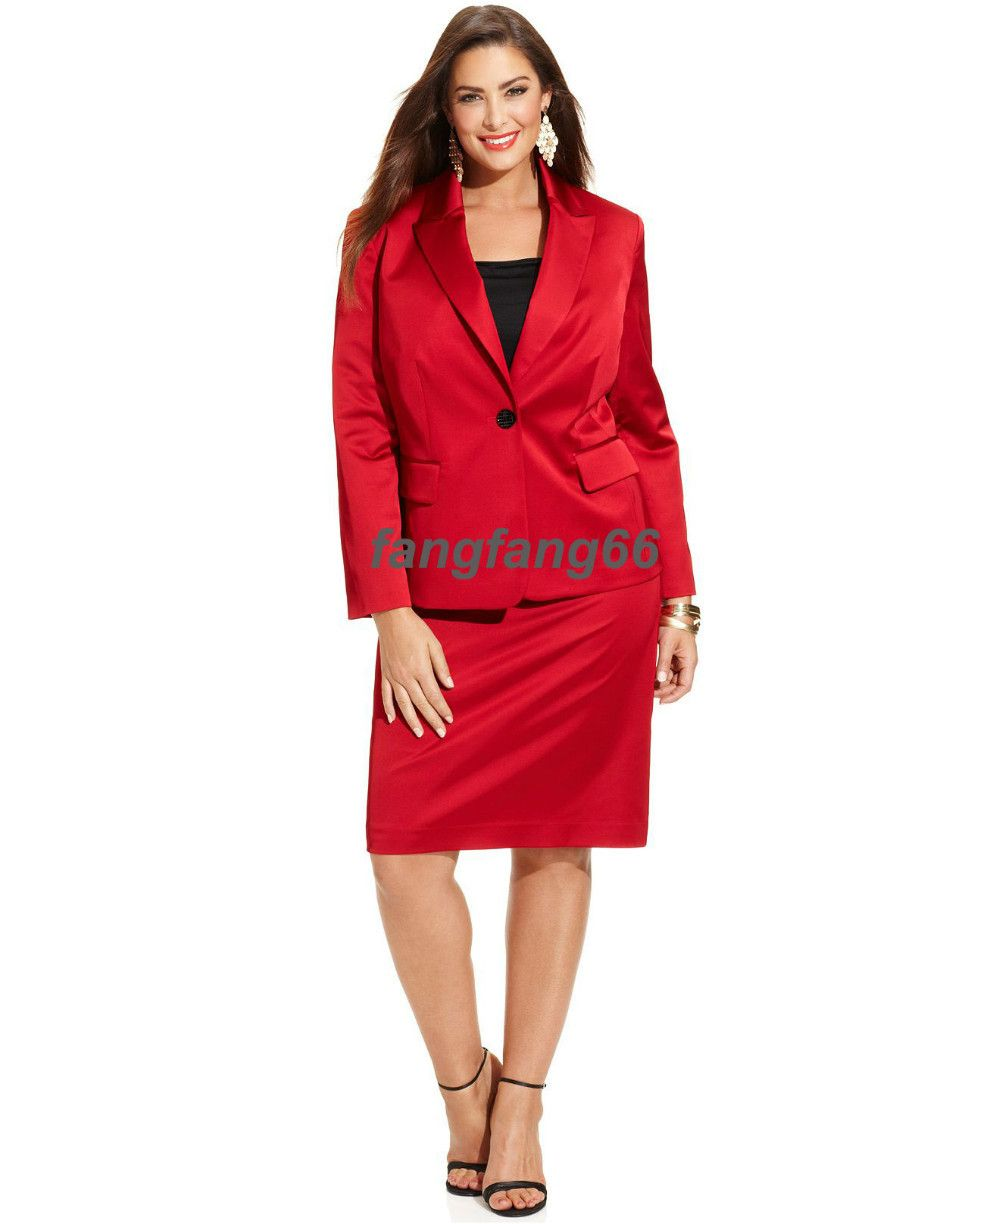 women in red suite | -Made-Suit-Plus-Size-Red-Women-Suits-Boutique ...